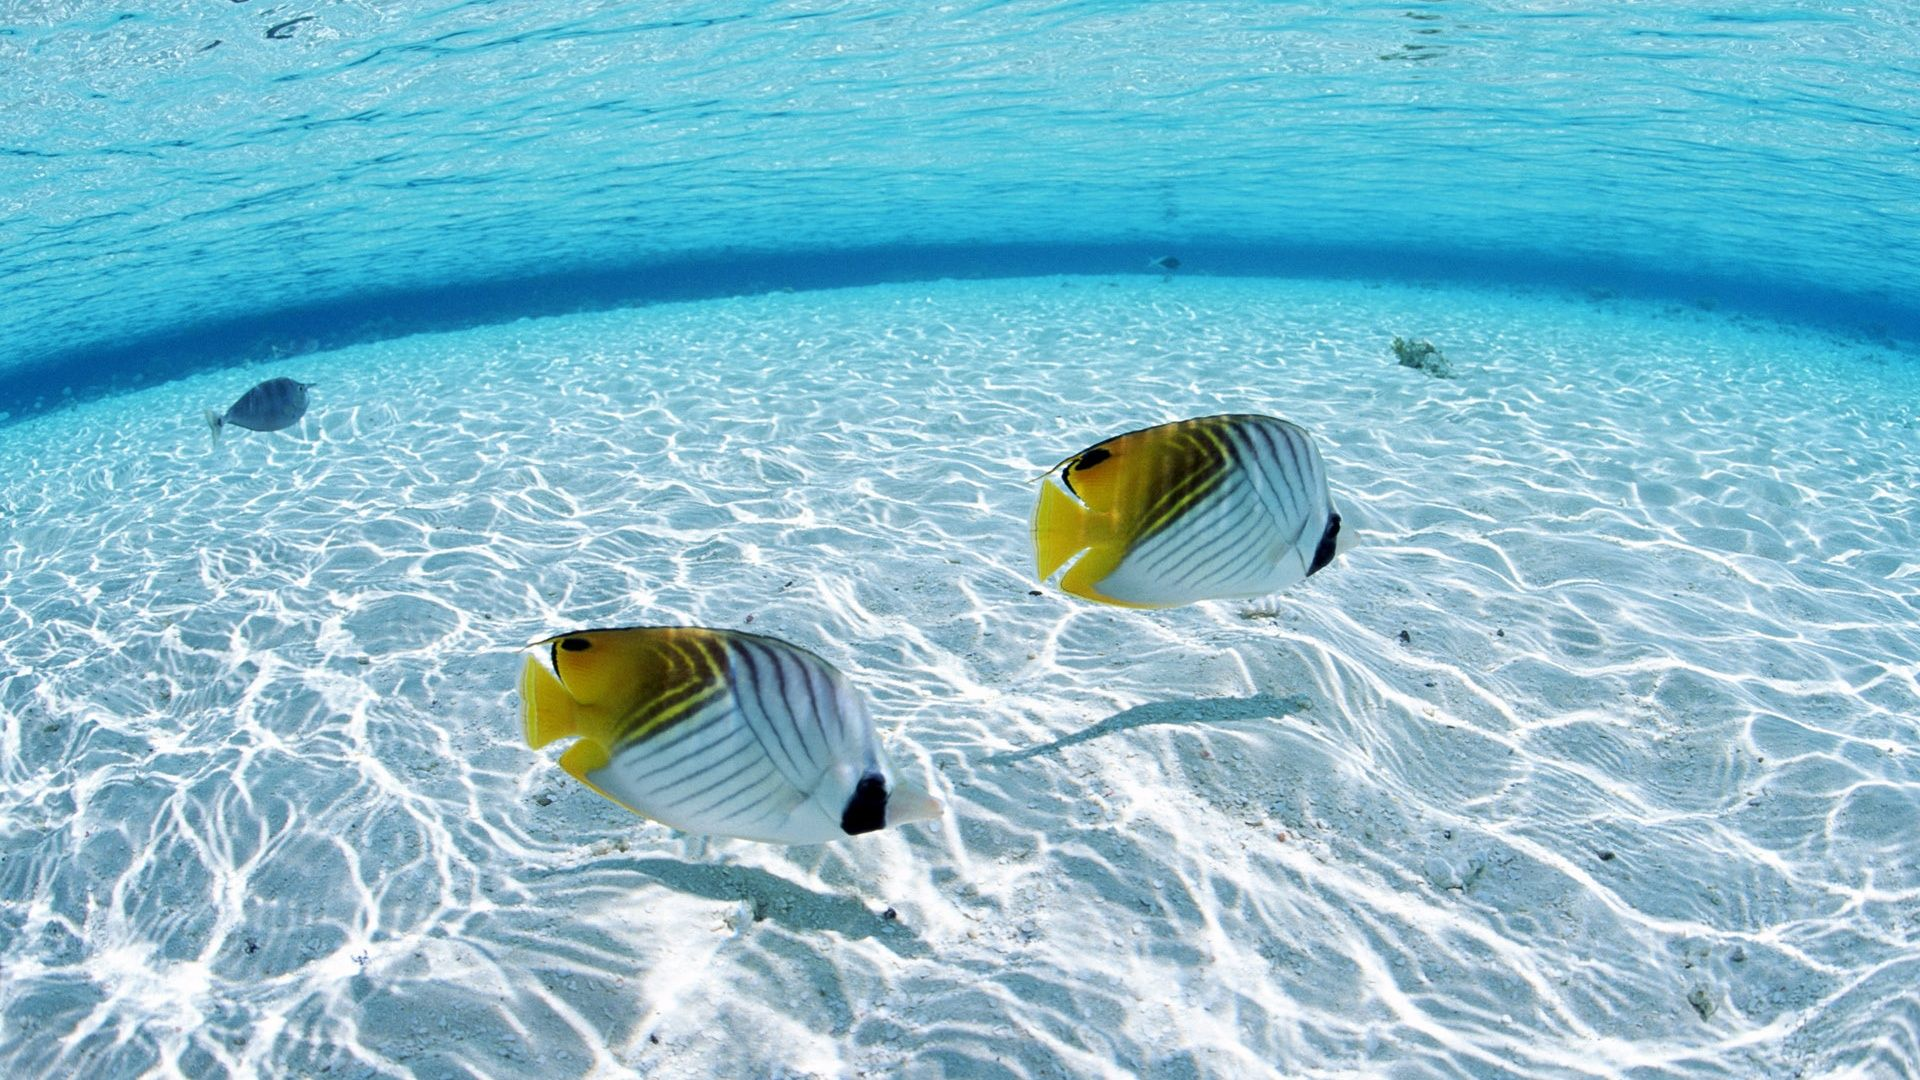 Hd Exotic Wallpapers Under Clear Sea Water 1581909 Hd